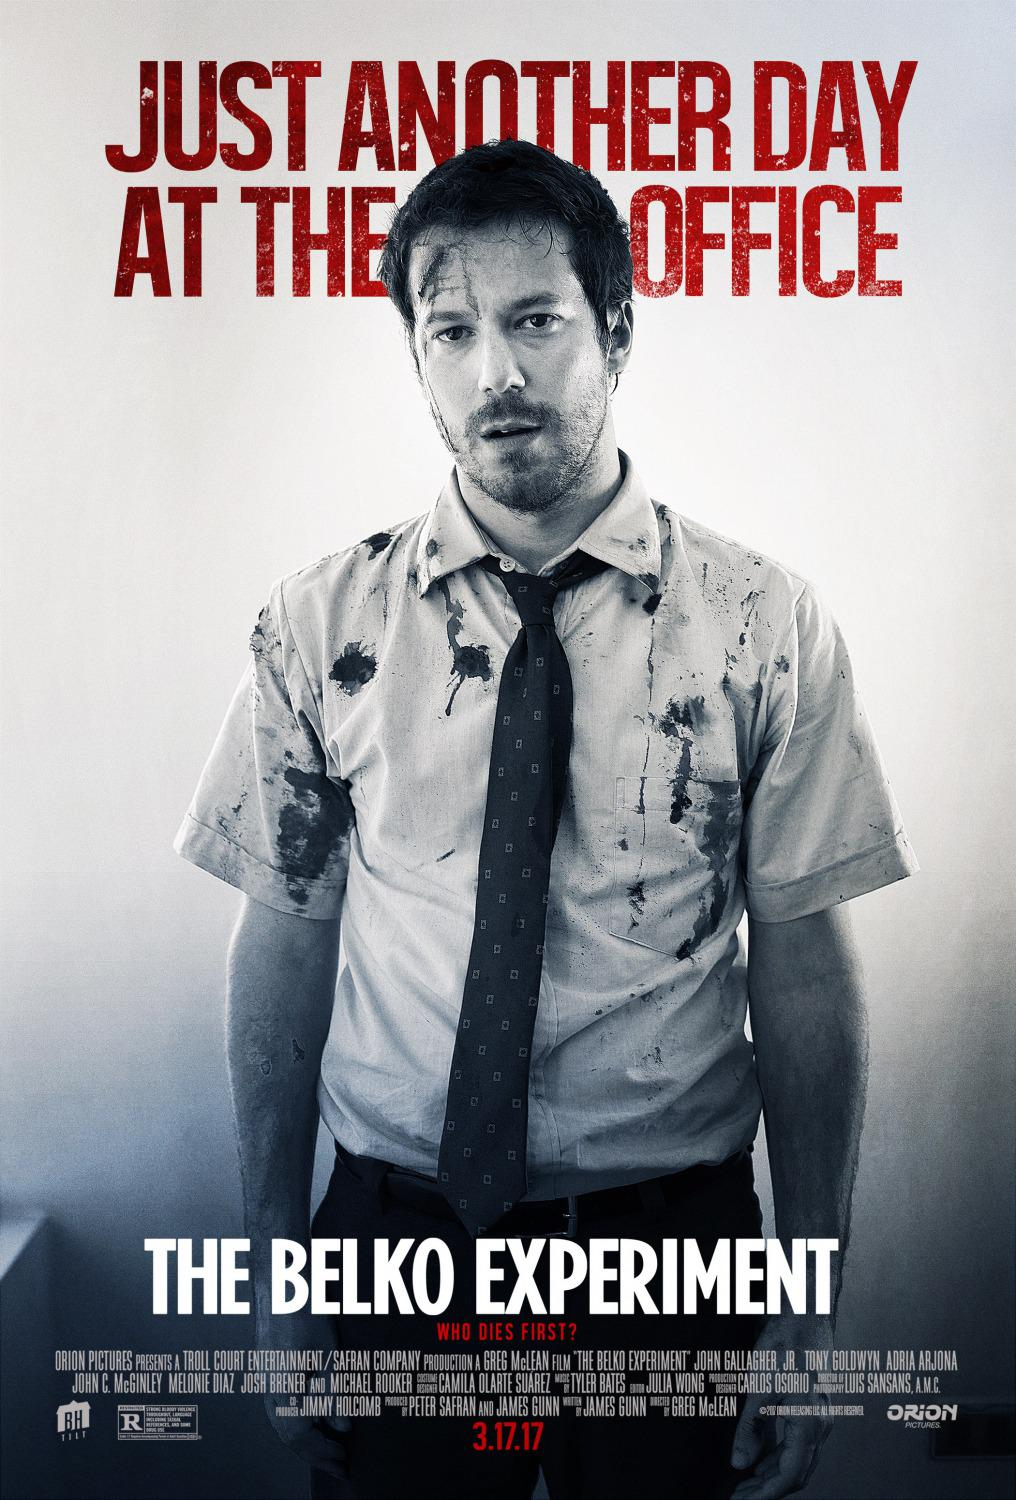 Belko experiment - film poster - Just another day at the office